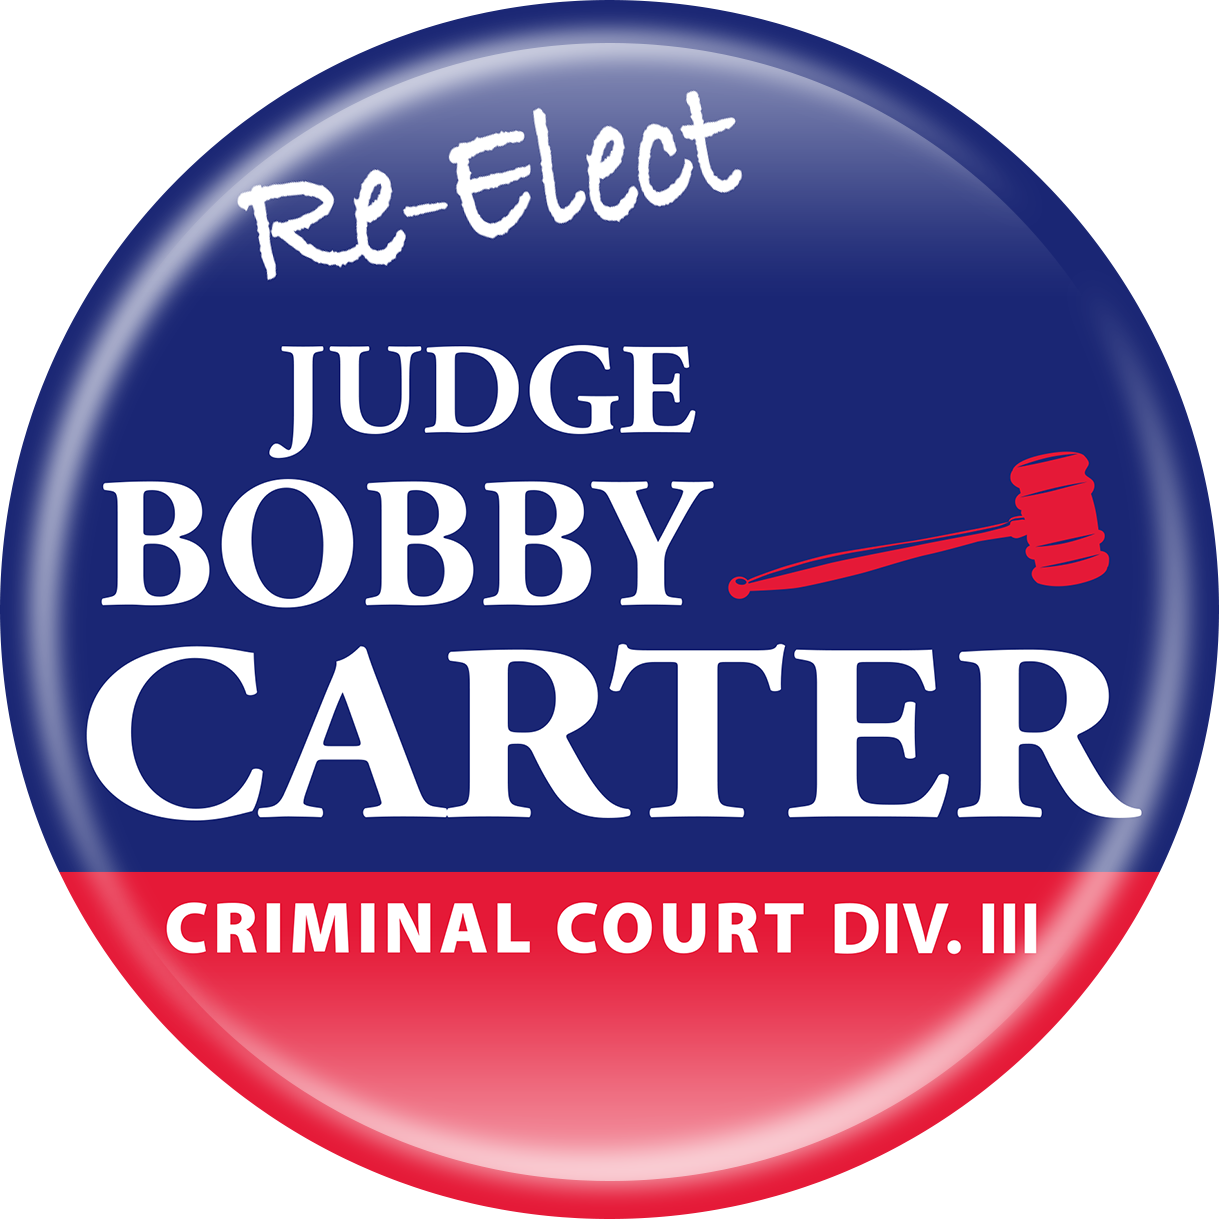 Re-elect Judge Bobby Carter